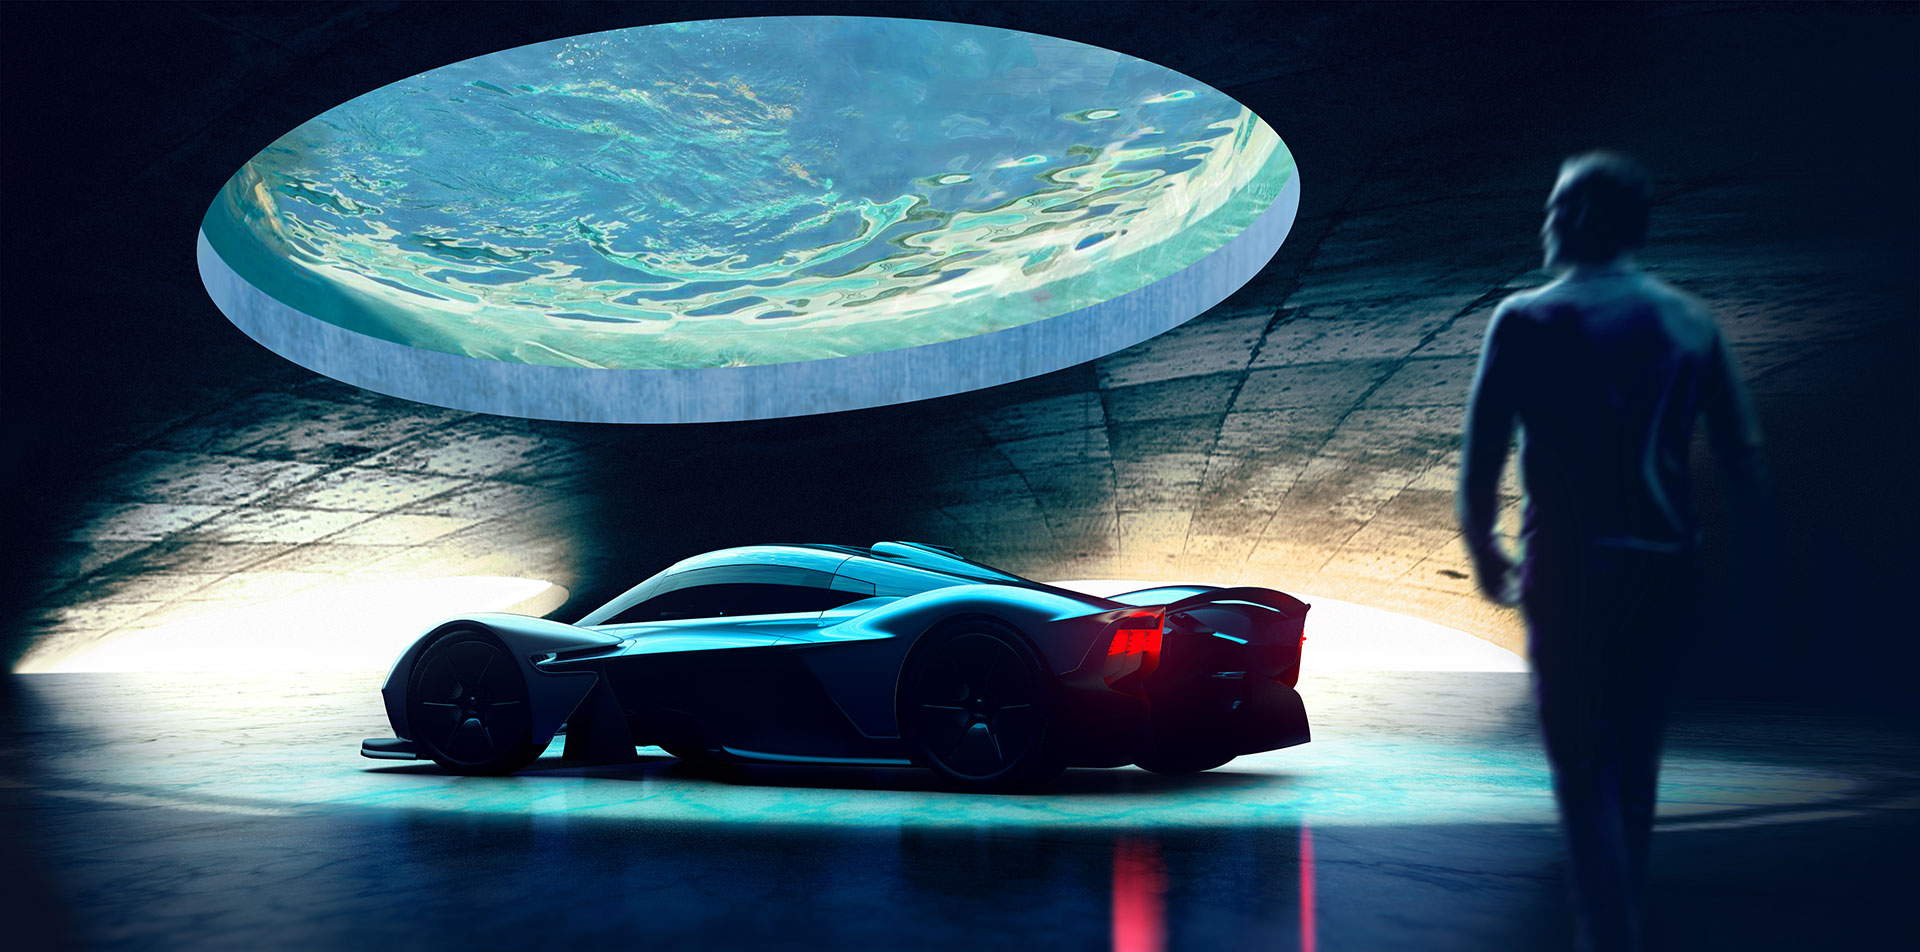 Aston Martin Automotive Galleries and Lairs- evealed at Pebble Beach   FINEST LIVING, the blog of FINEST RESIDENCES